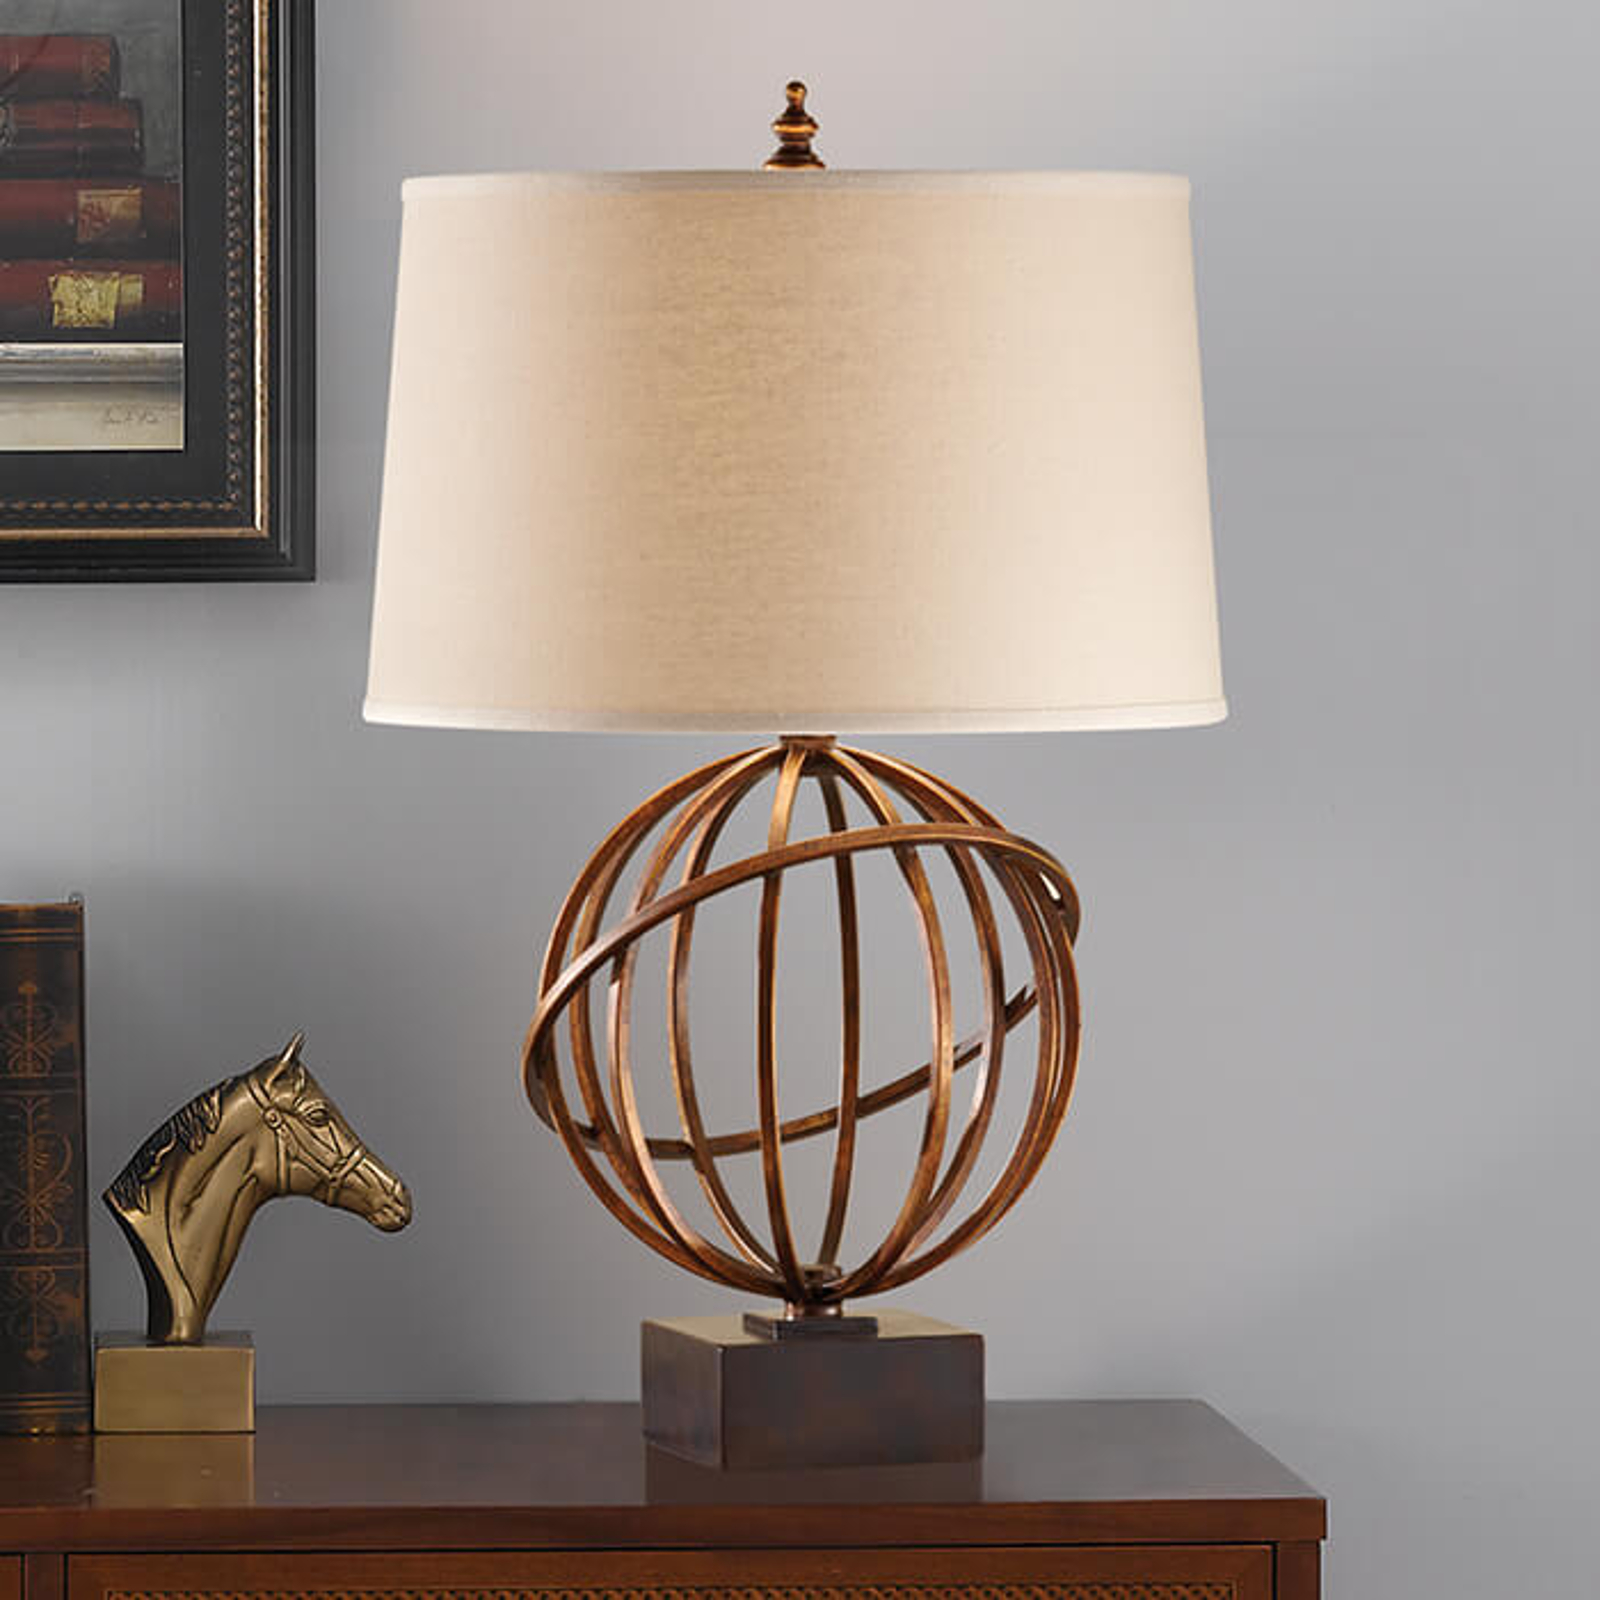 Well-designed fabric table lamp Spencer_3048359_1